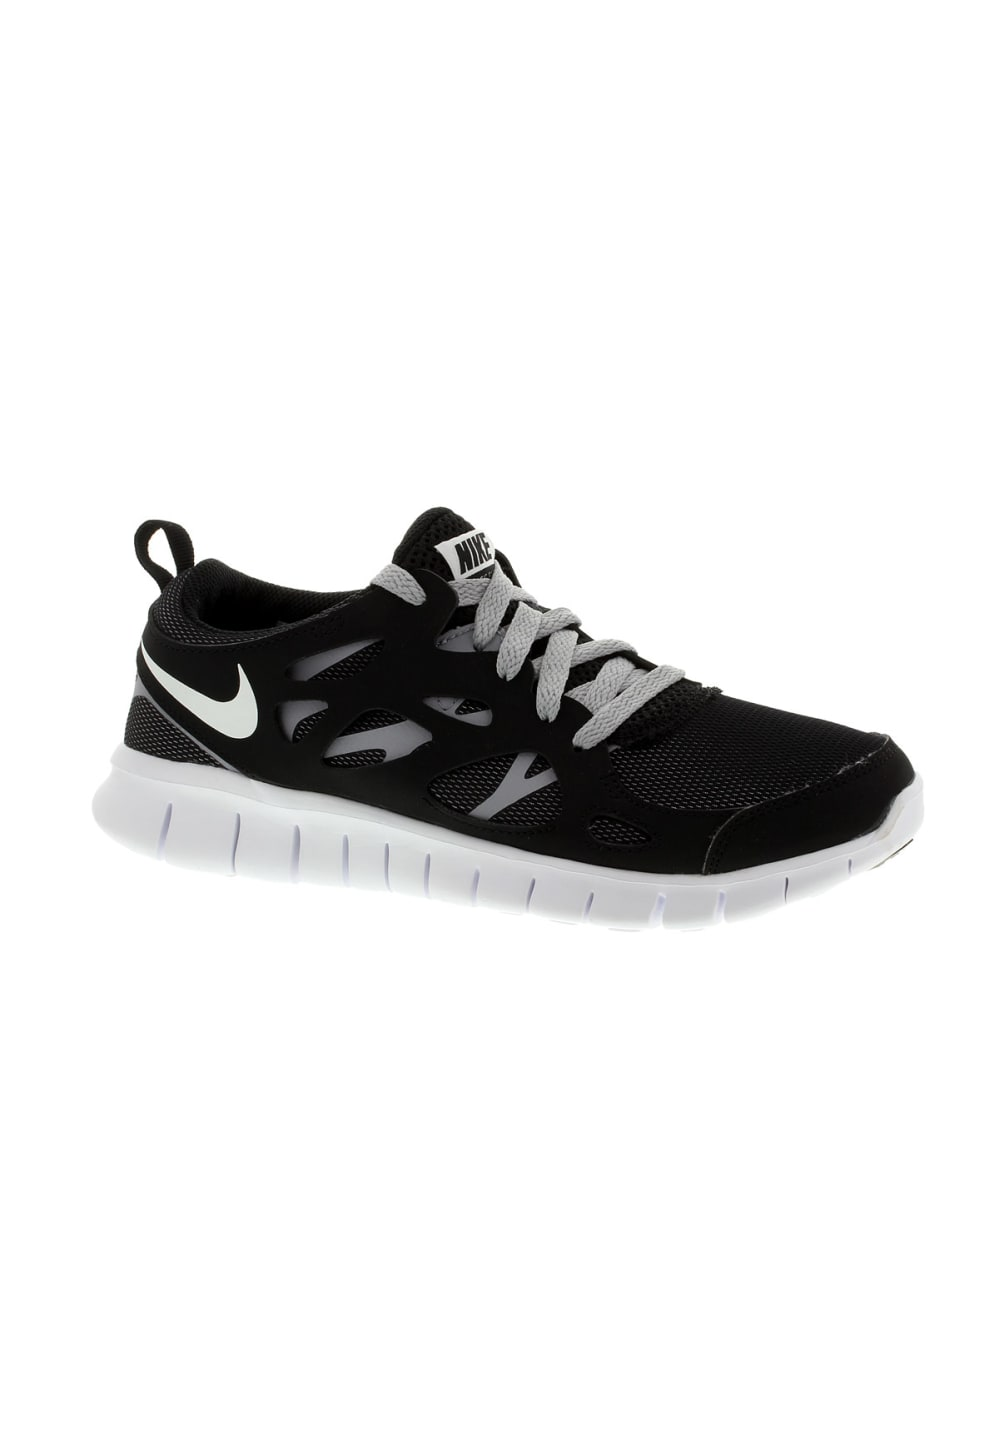 San Francisco 693de 494a8 Nike Free Run 2 - Chaussures running - Noir